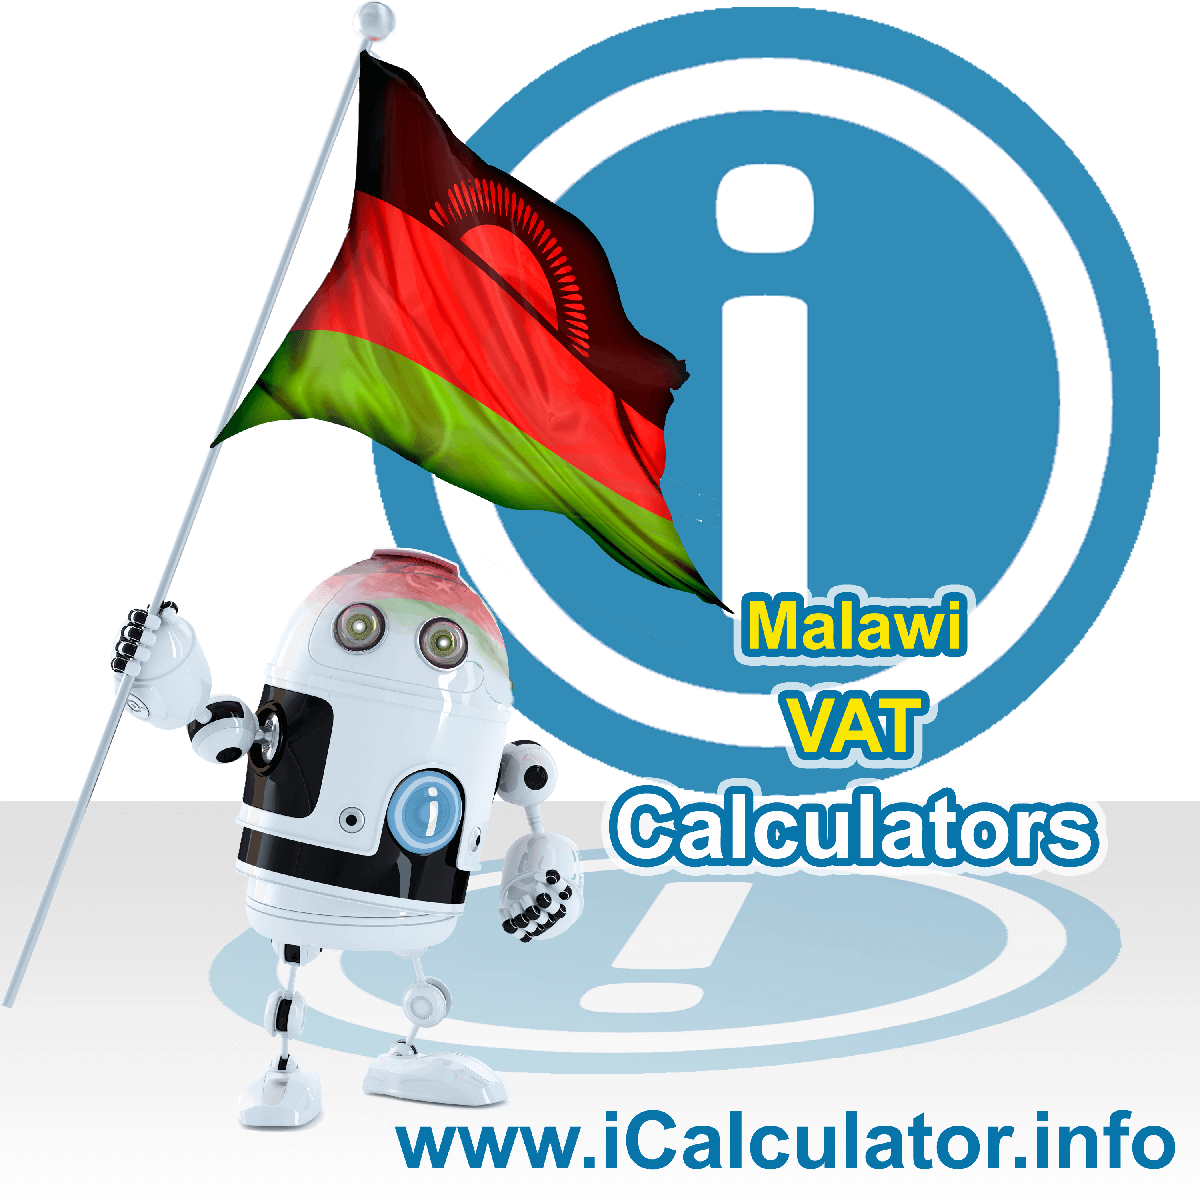 Malawi VAT Calculator. This image shows the Malawi flag and information relating to the VAT formula used for calculating Value Added Tax in Malawi using the Malawi VAT Calculator in 2020